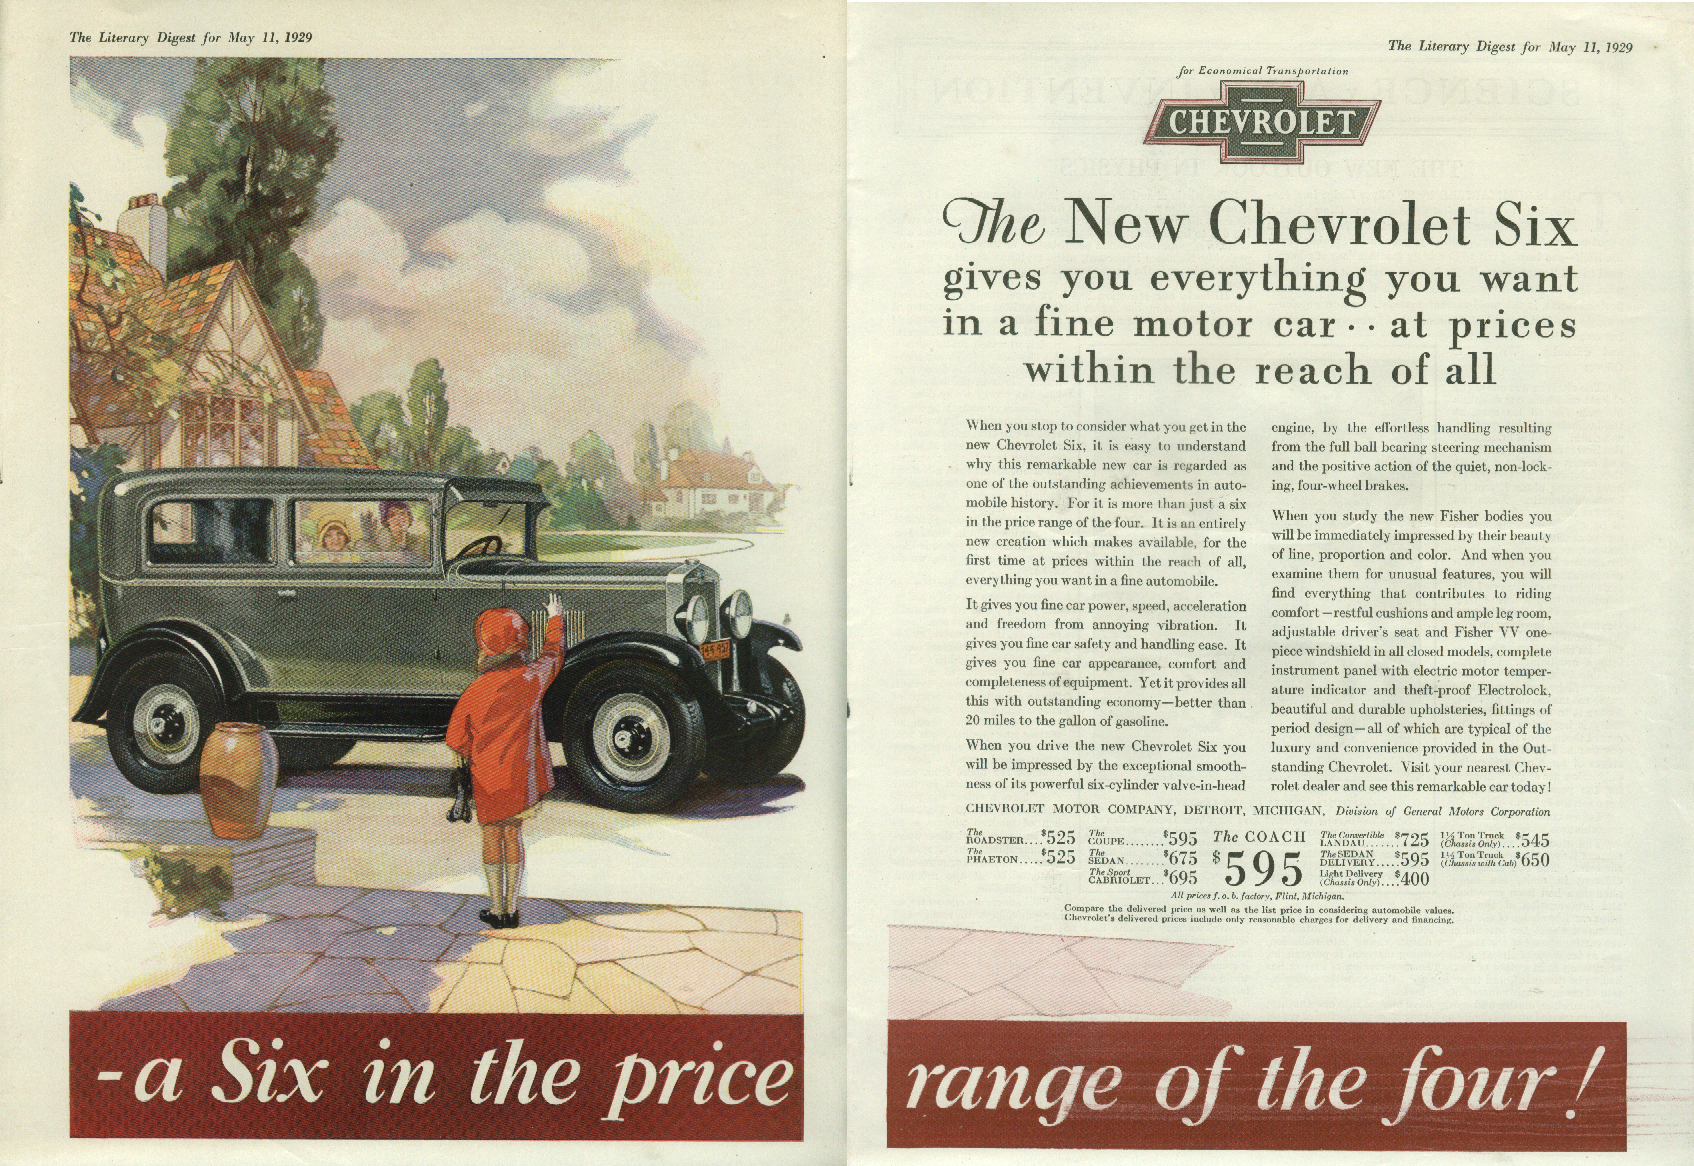 A six in the price range of a Four Chevroler 2-dr Sedan ad 1929